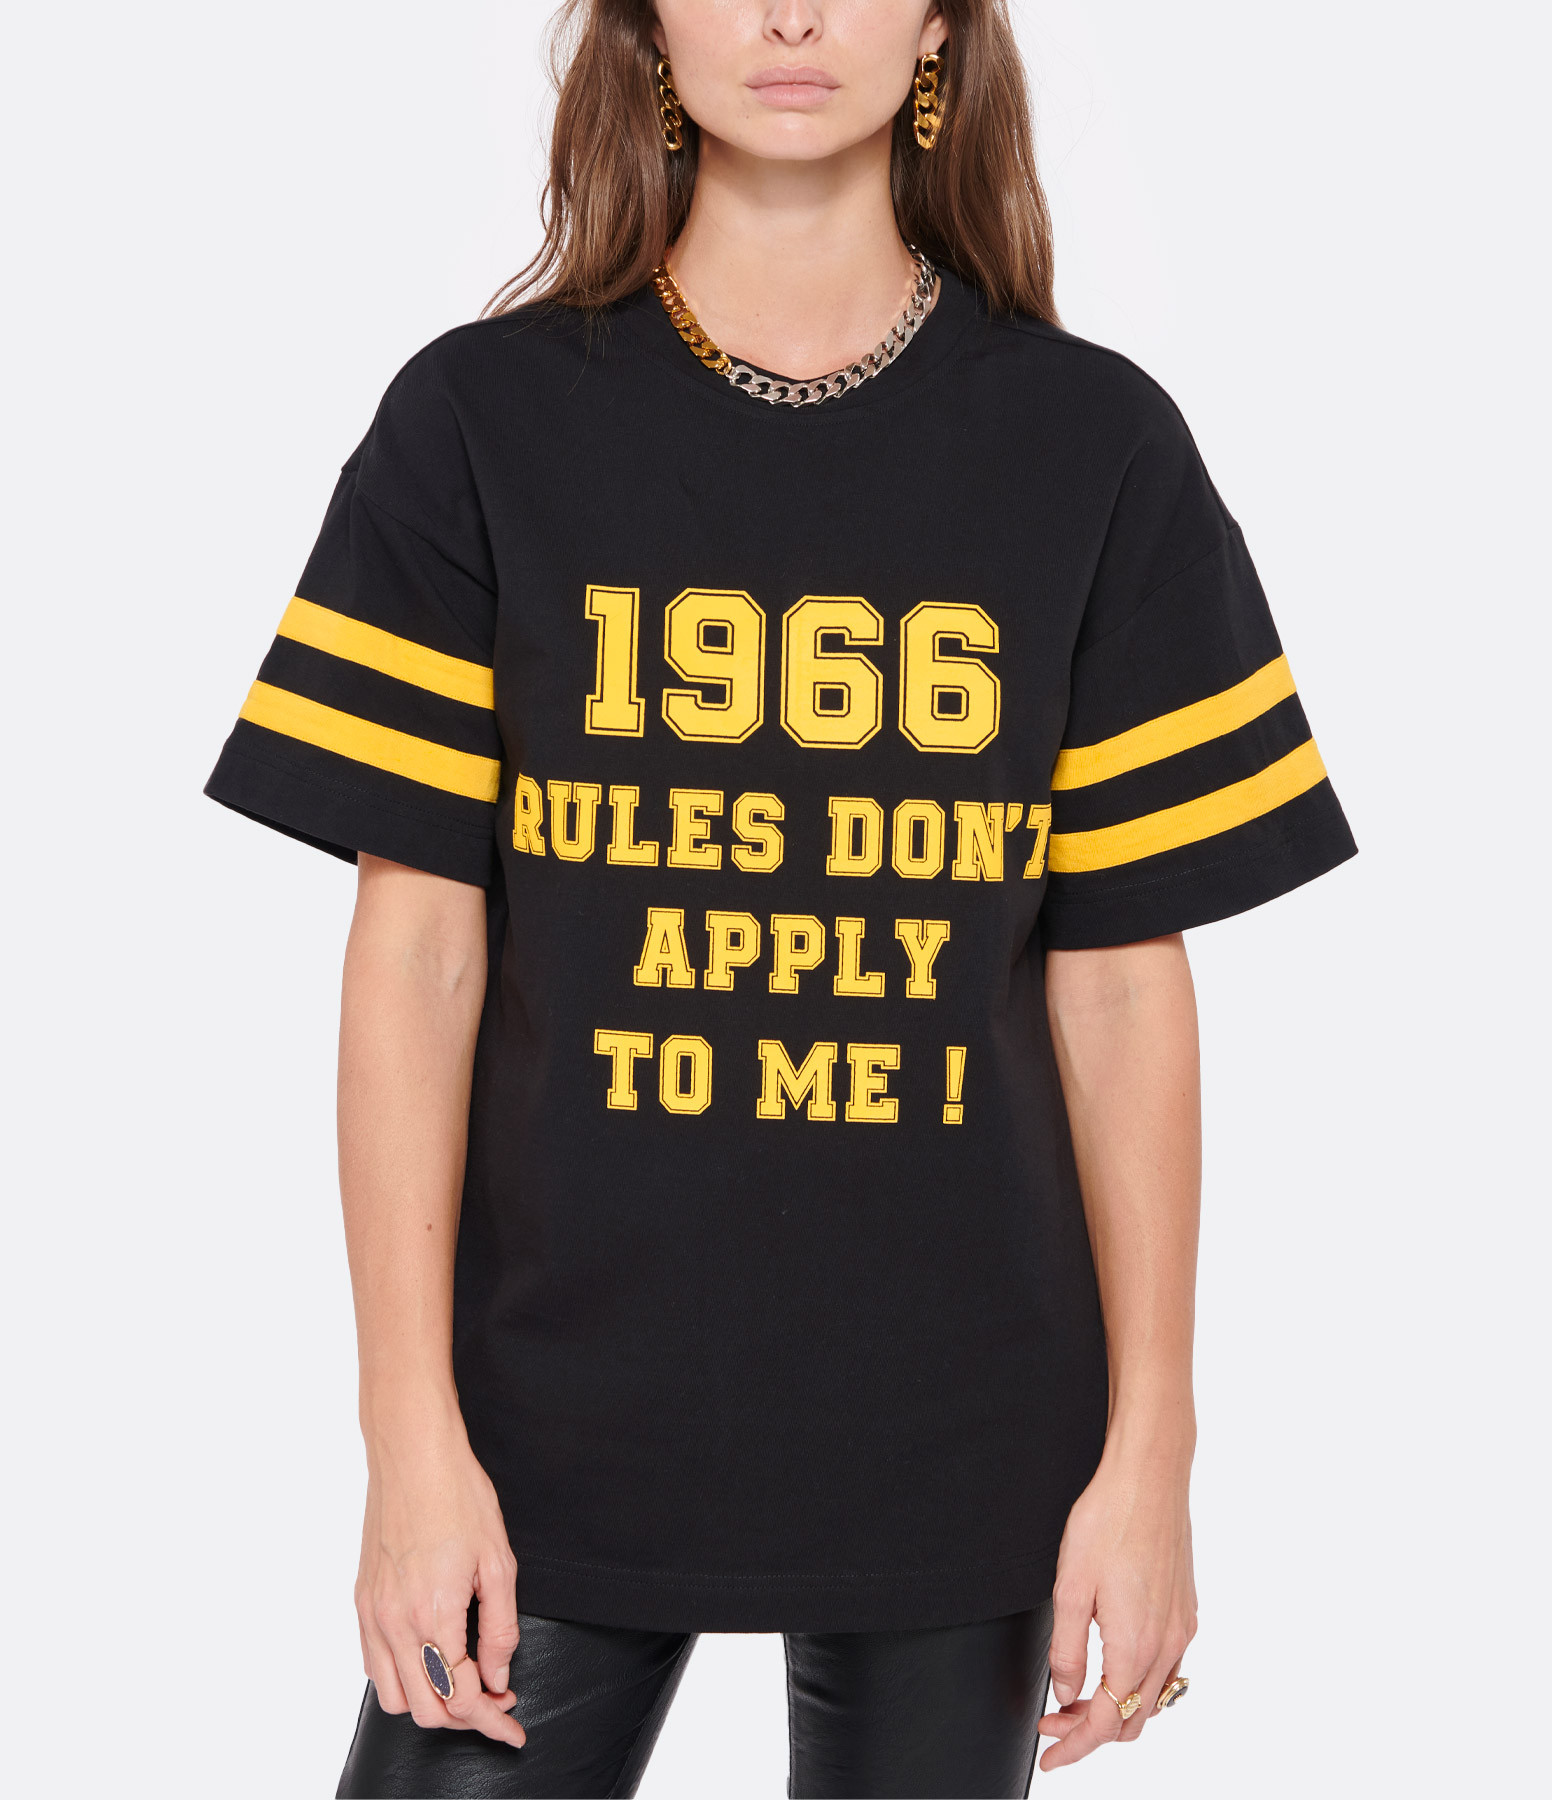 LAURENCE BRAS - Tee-shirt Rugby Coton Noir